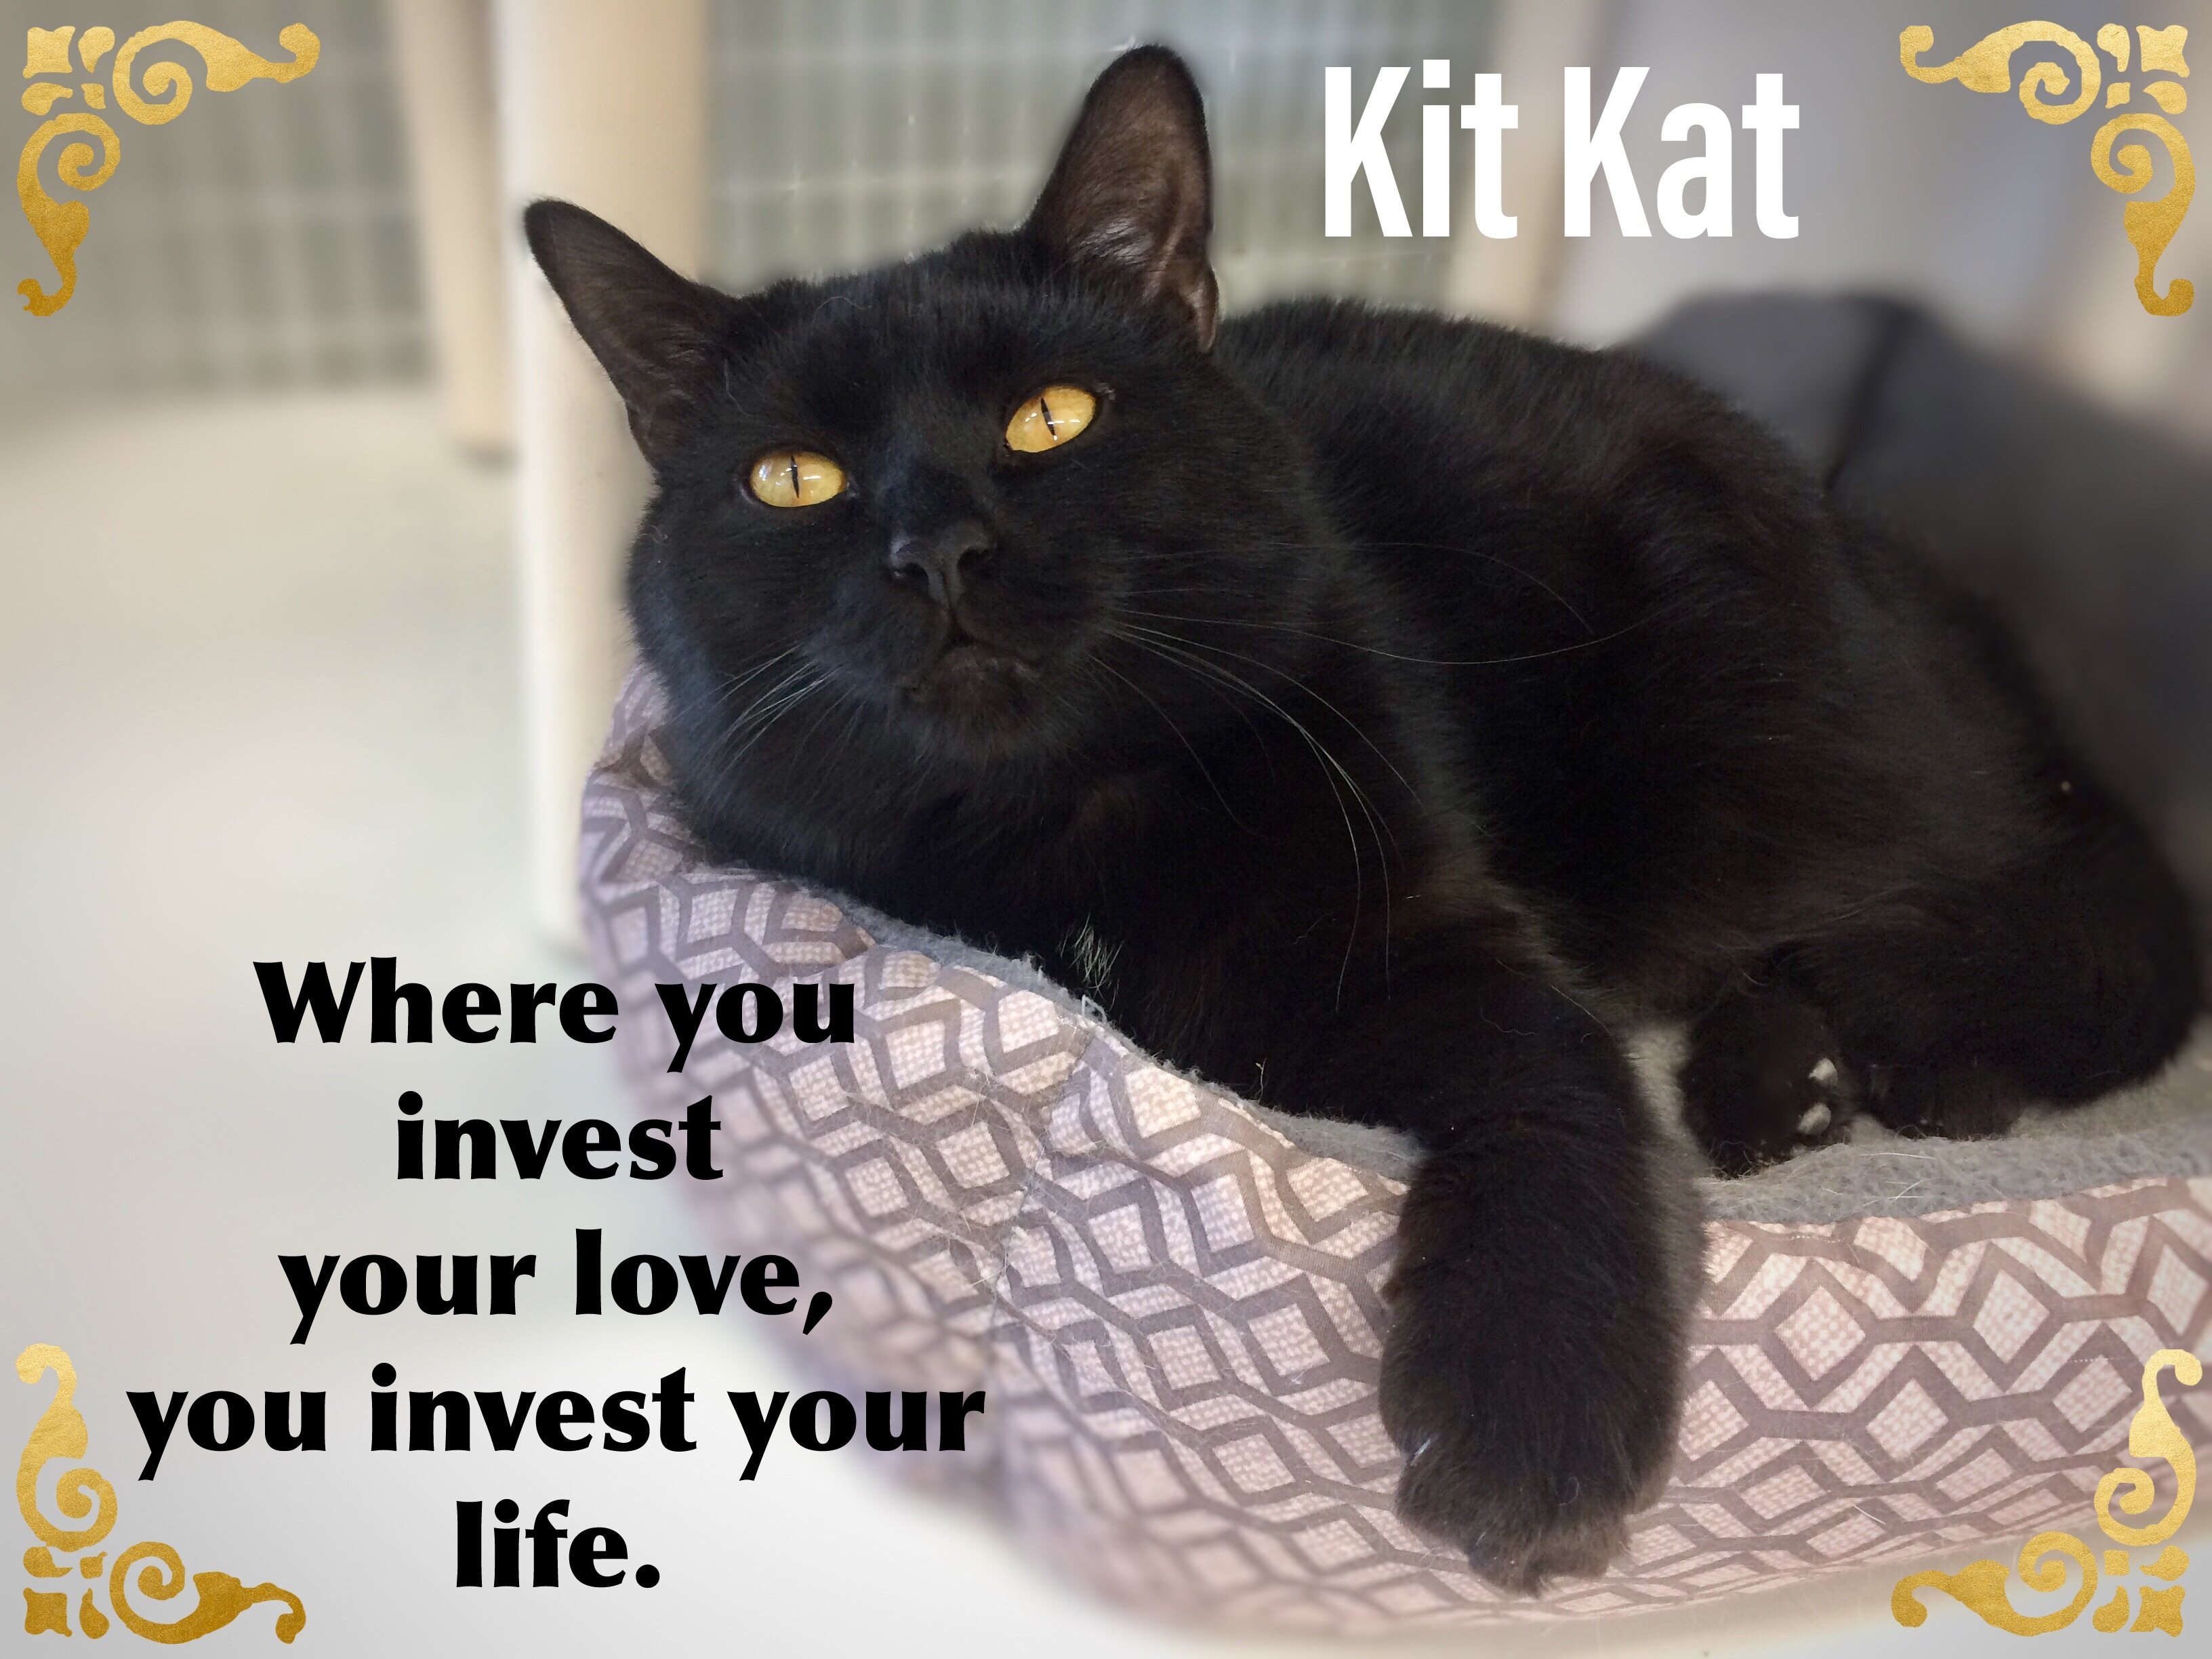 Cat for Adoption – Kit-Kat, near Fort Kent, ME | Petfinder